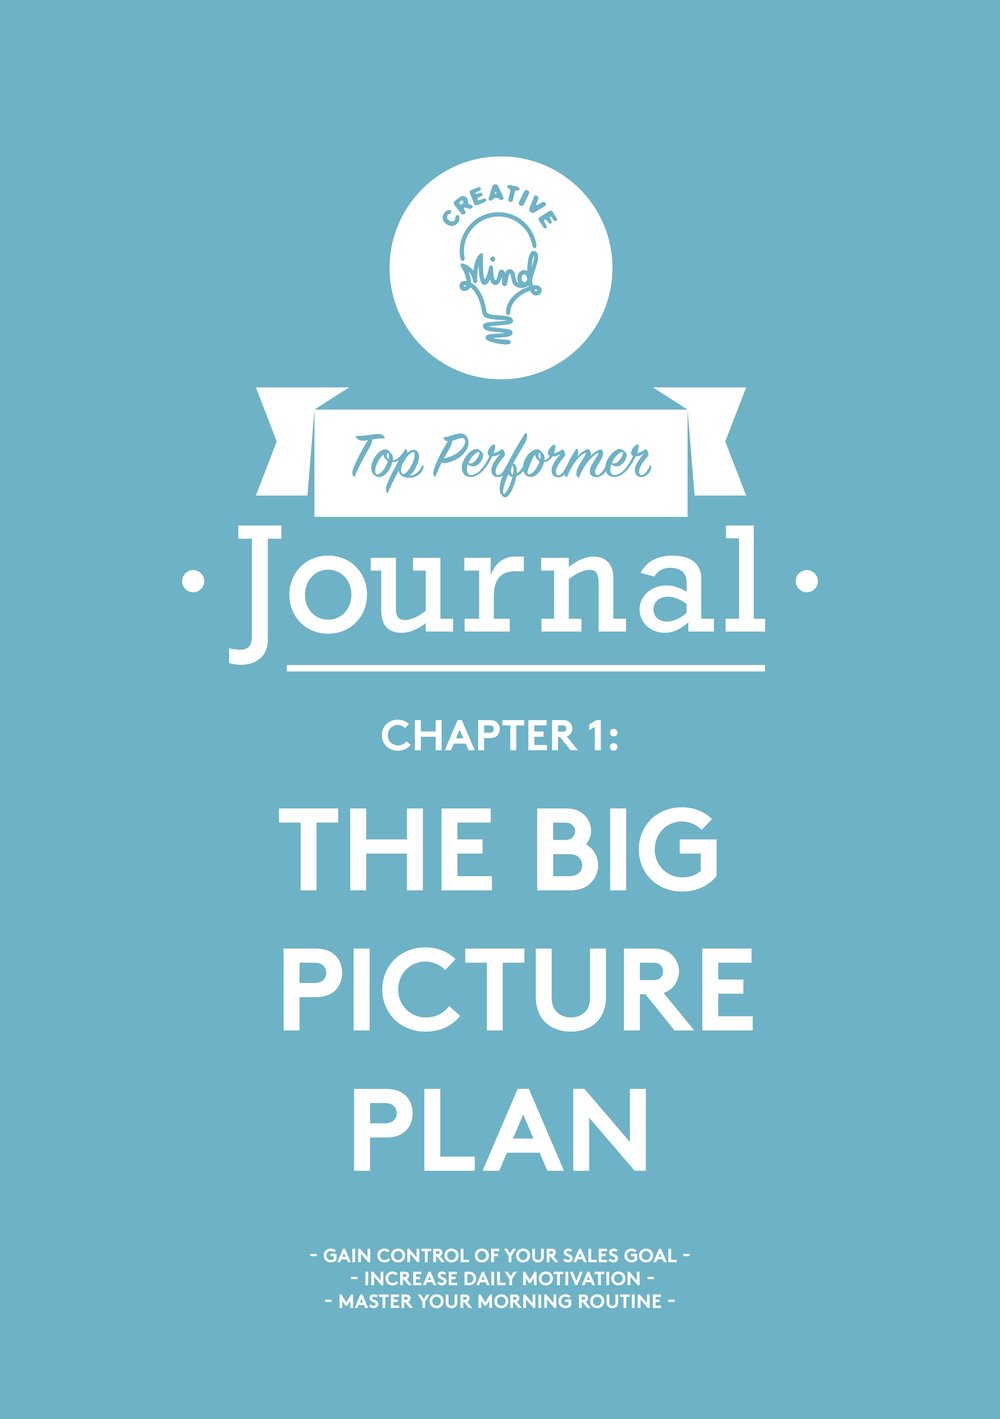 FREE DOWNLOAD: Top Performer Journal Chapter 1 - Gain control of your sales goalIncrease daily motivationMaster your morning routine